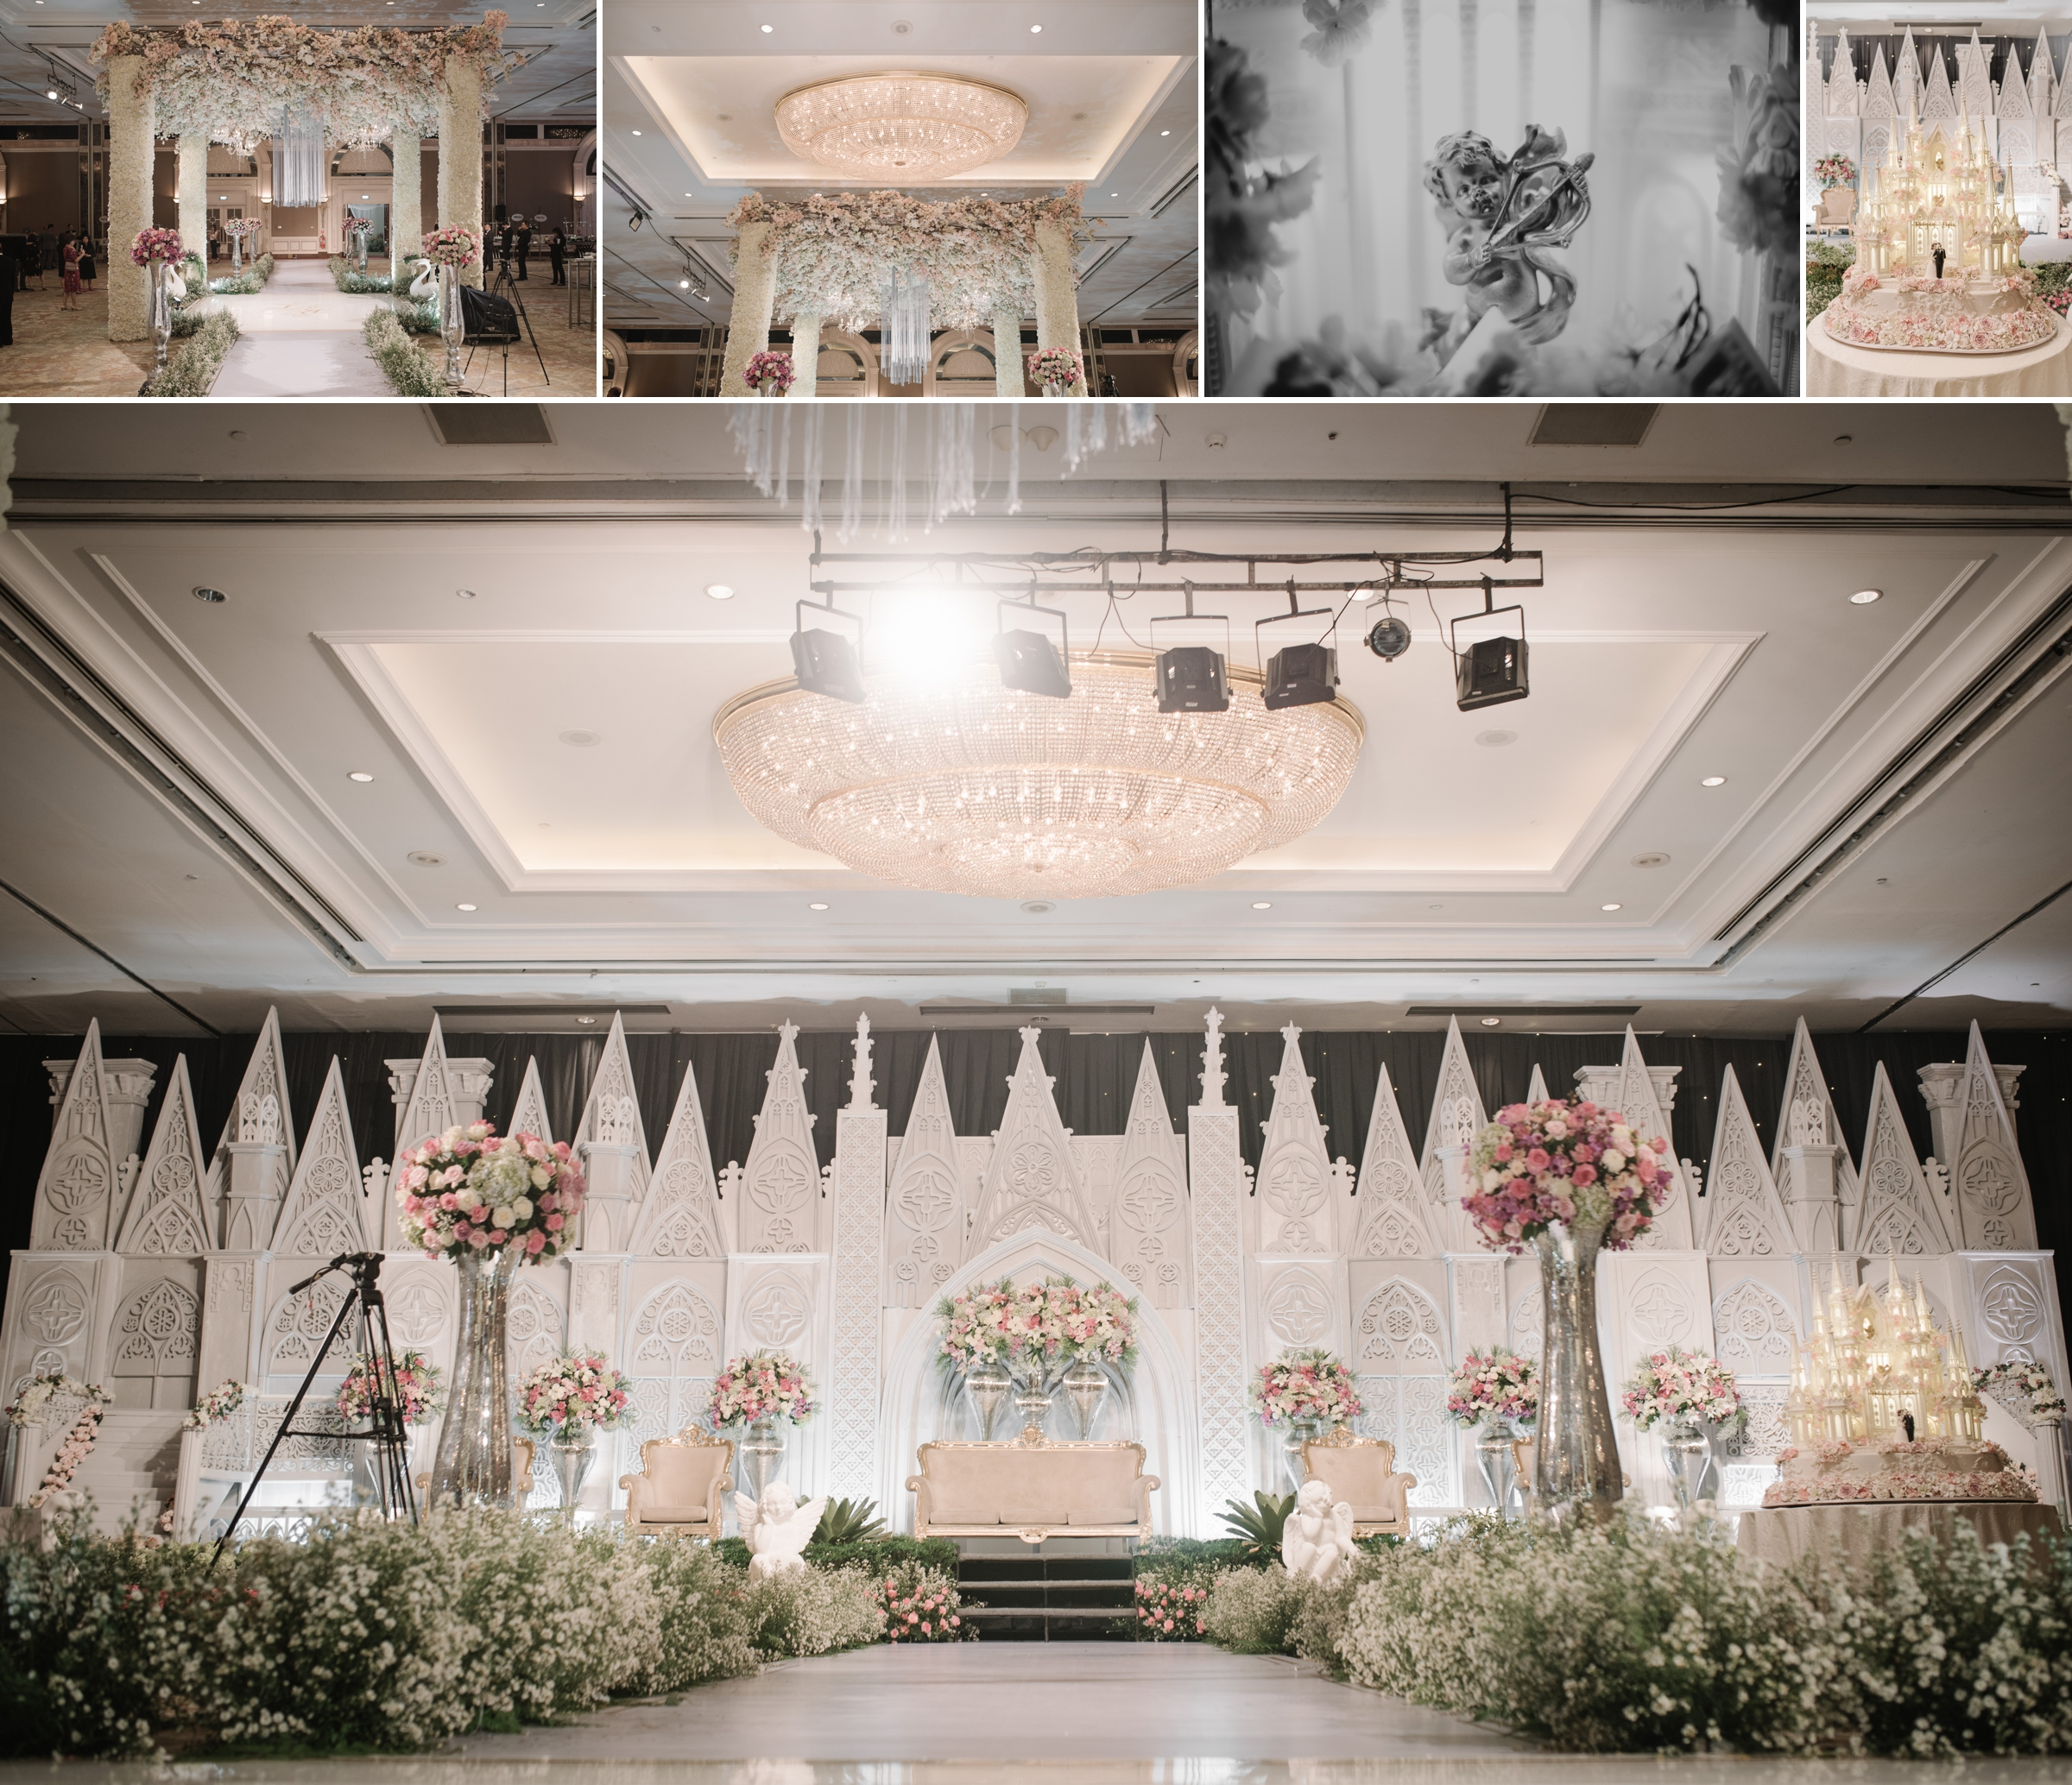 livia-reagan-wedding-raffles-jakarta-pyara-photo-gejoo 44.jpg